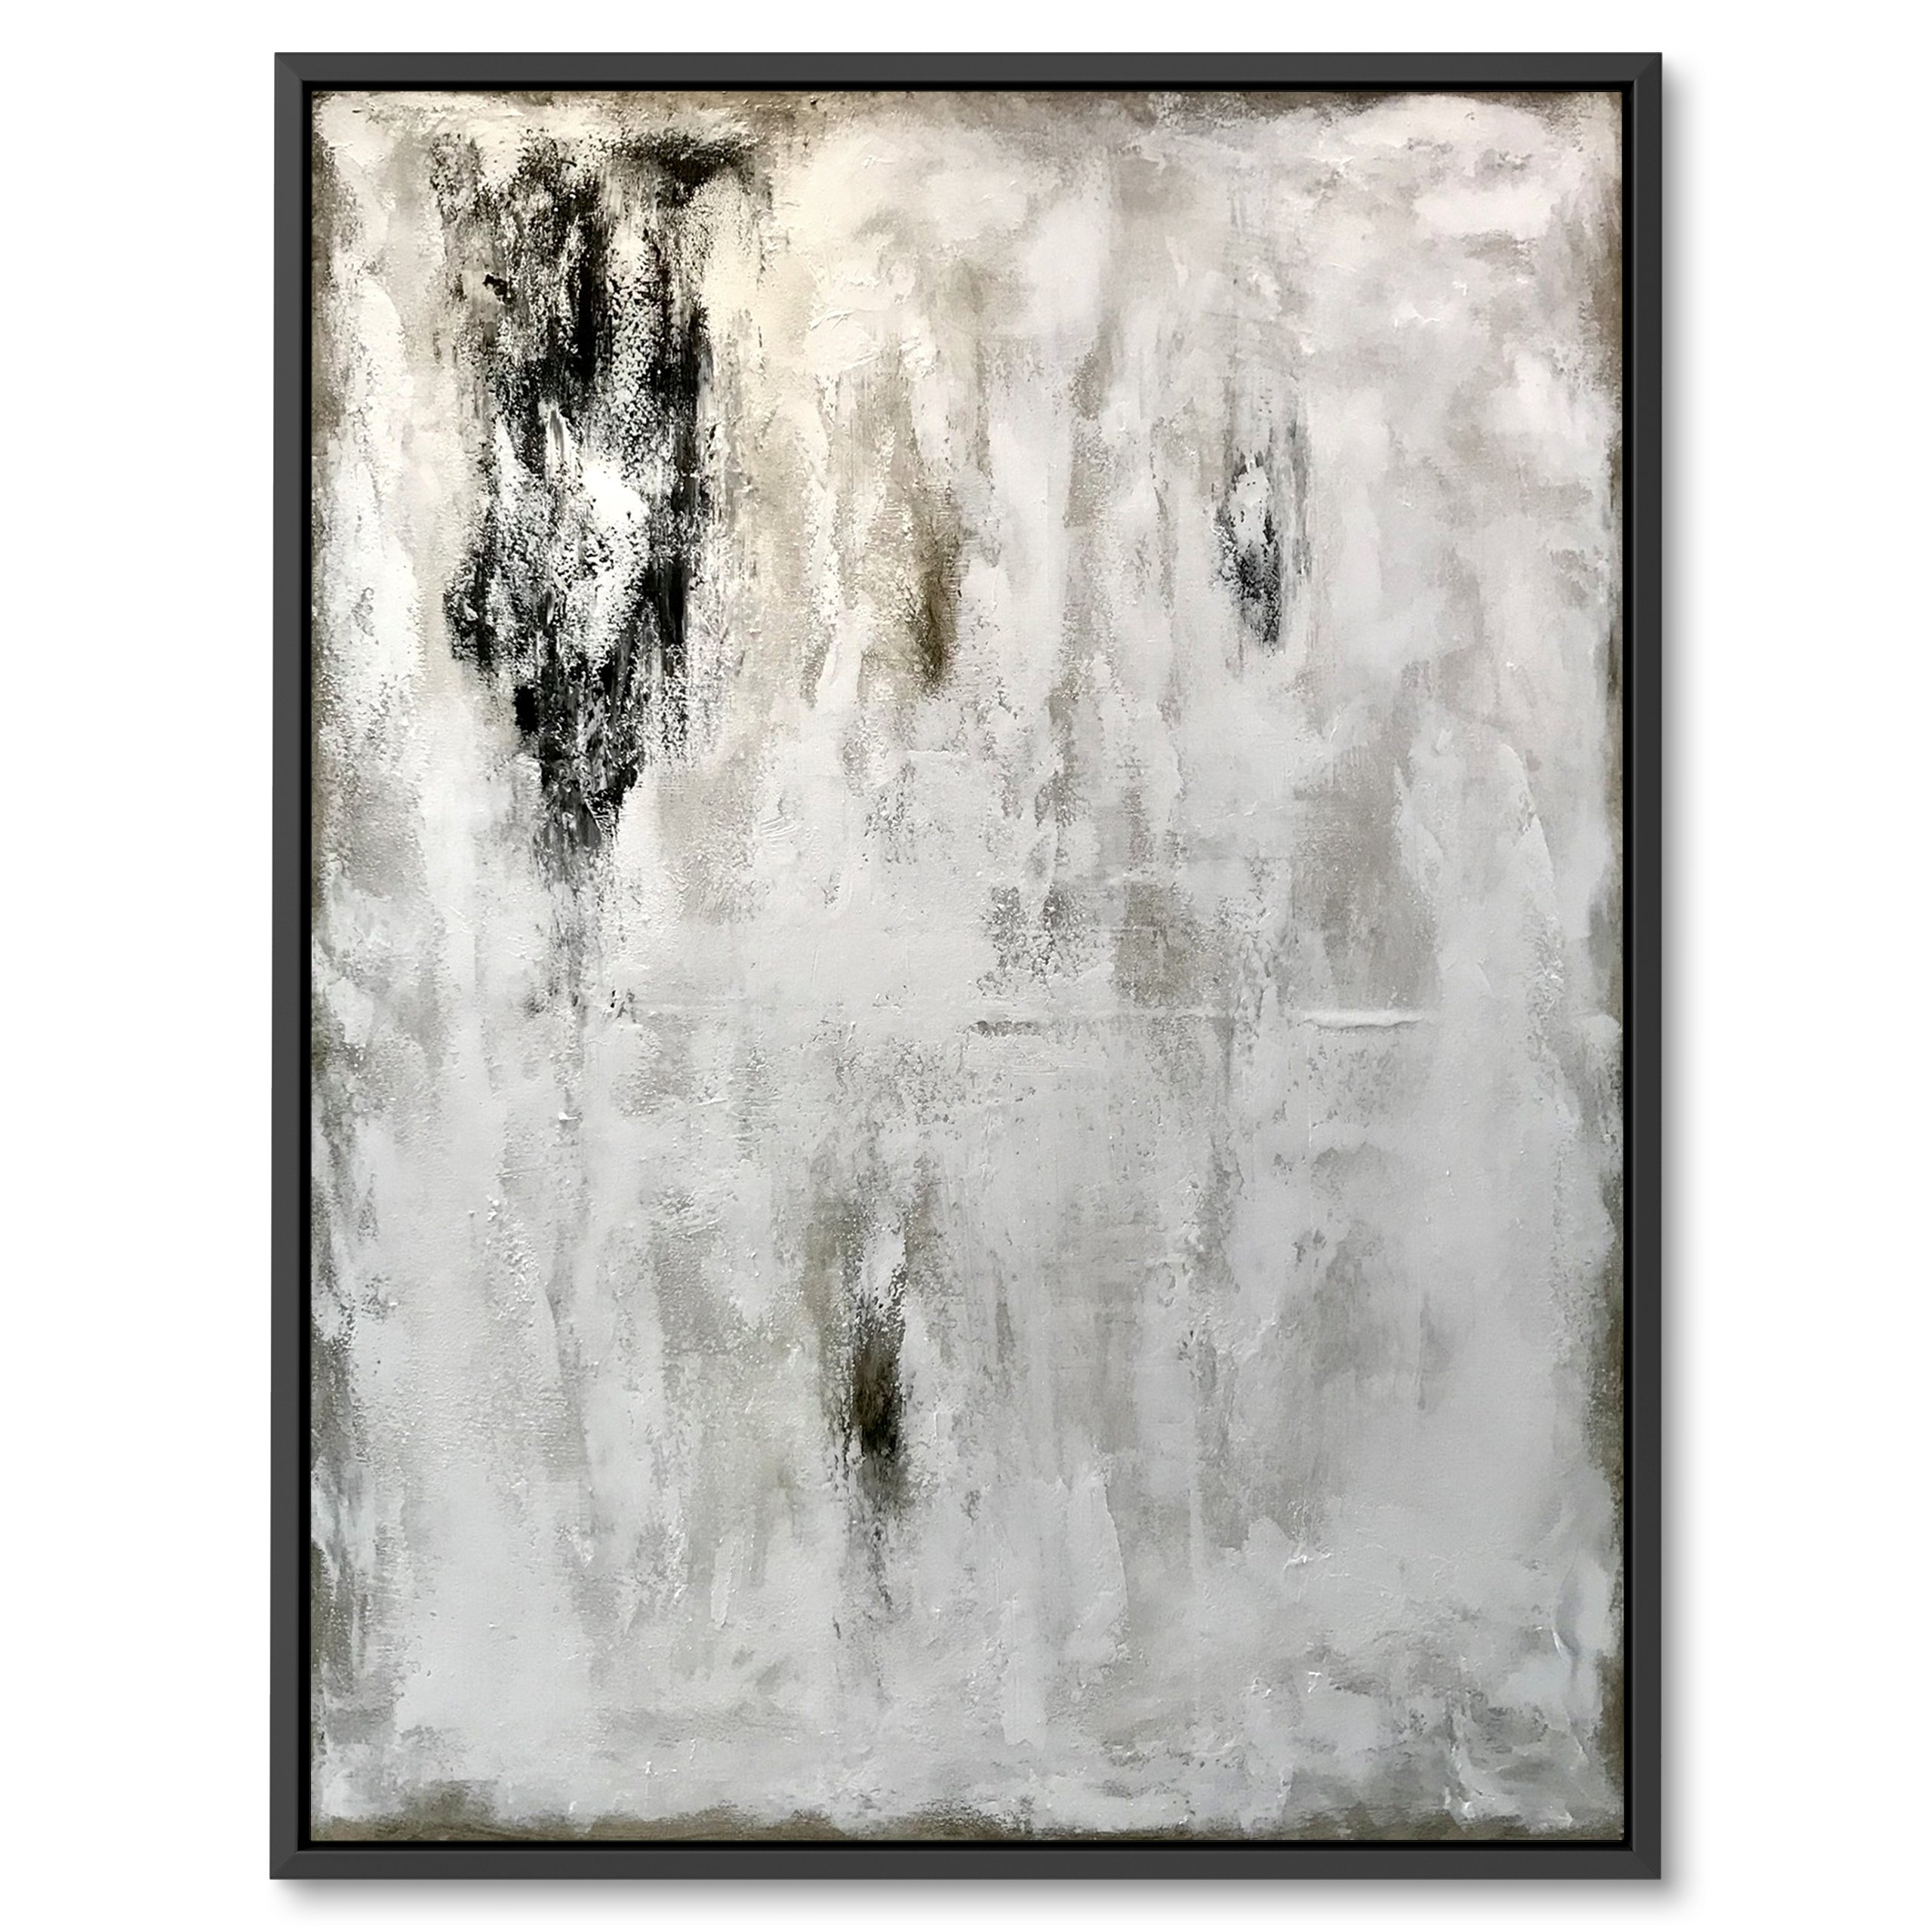 Black and white abstract art painting by Benny Moshe. for home decor